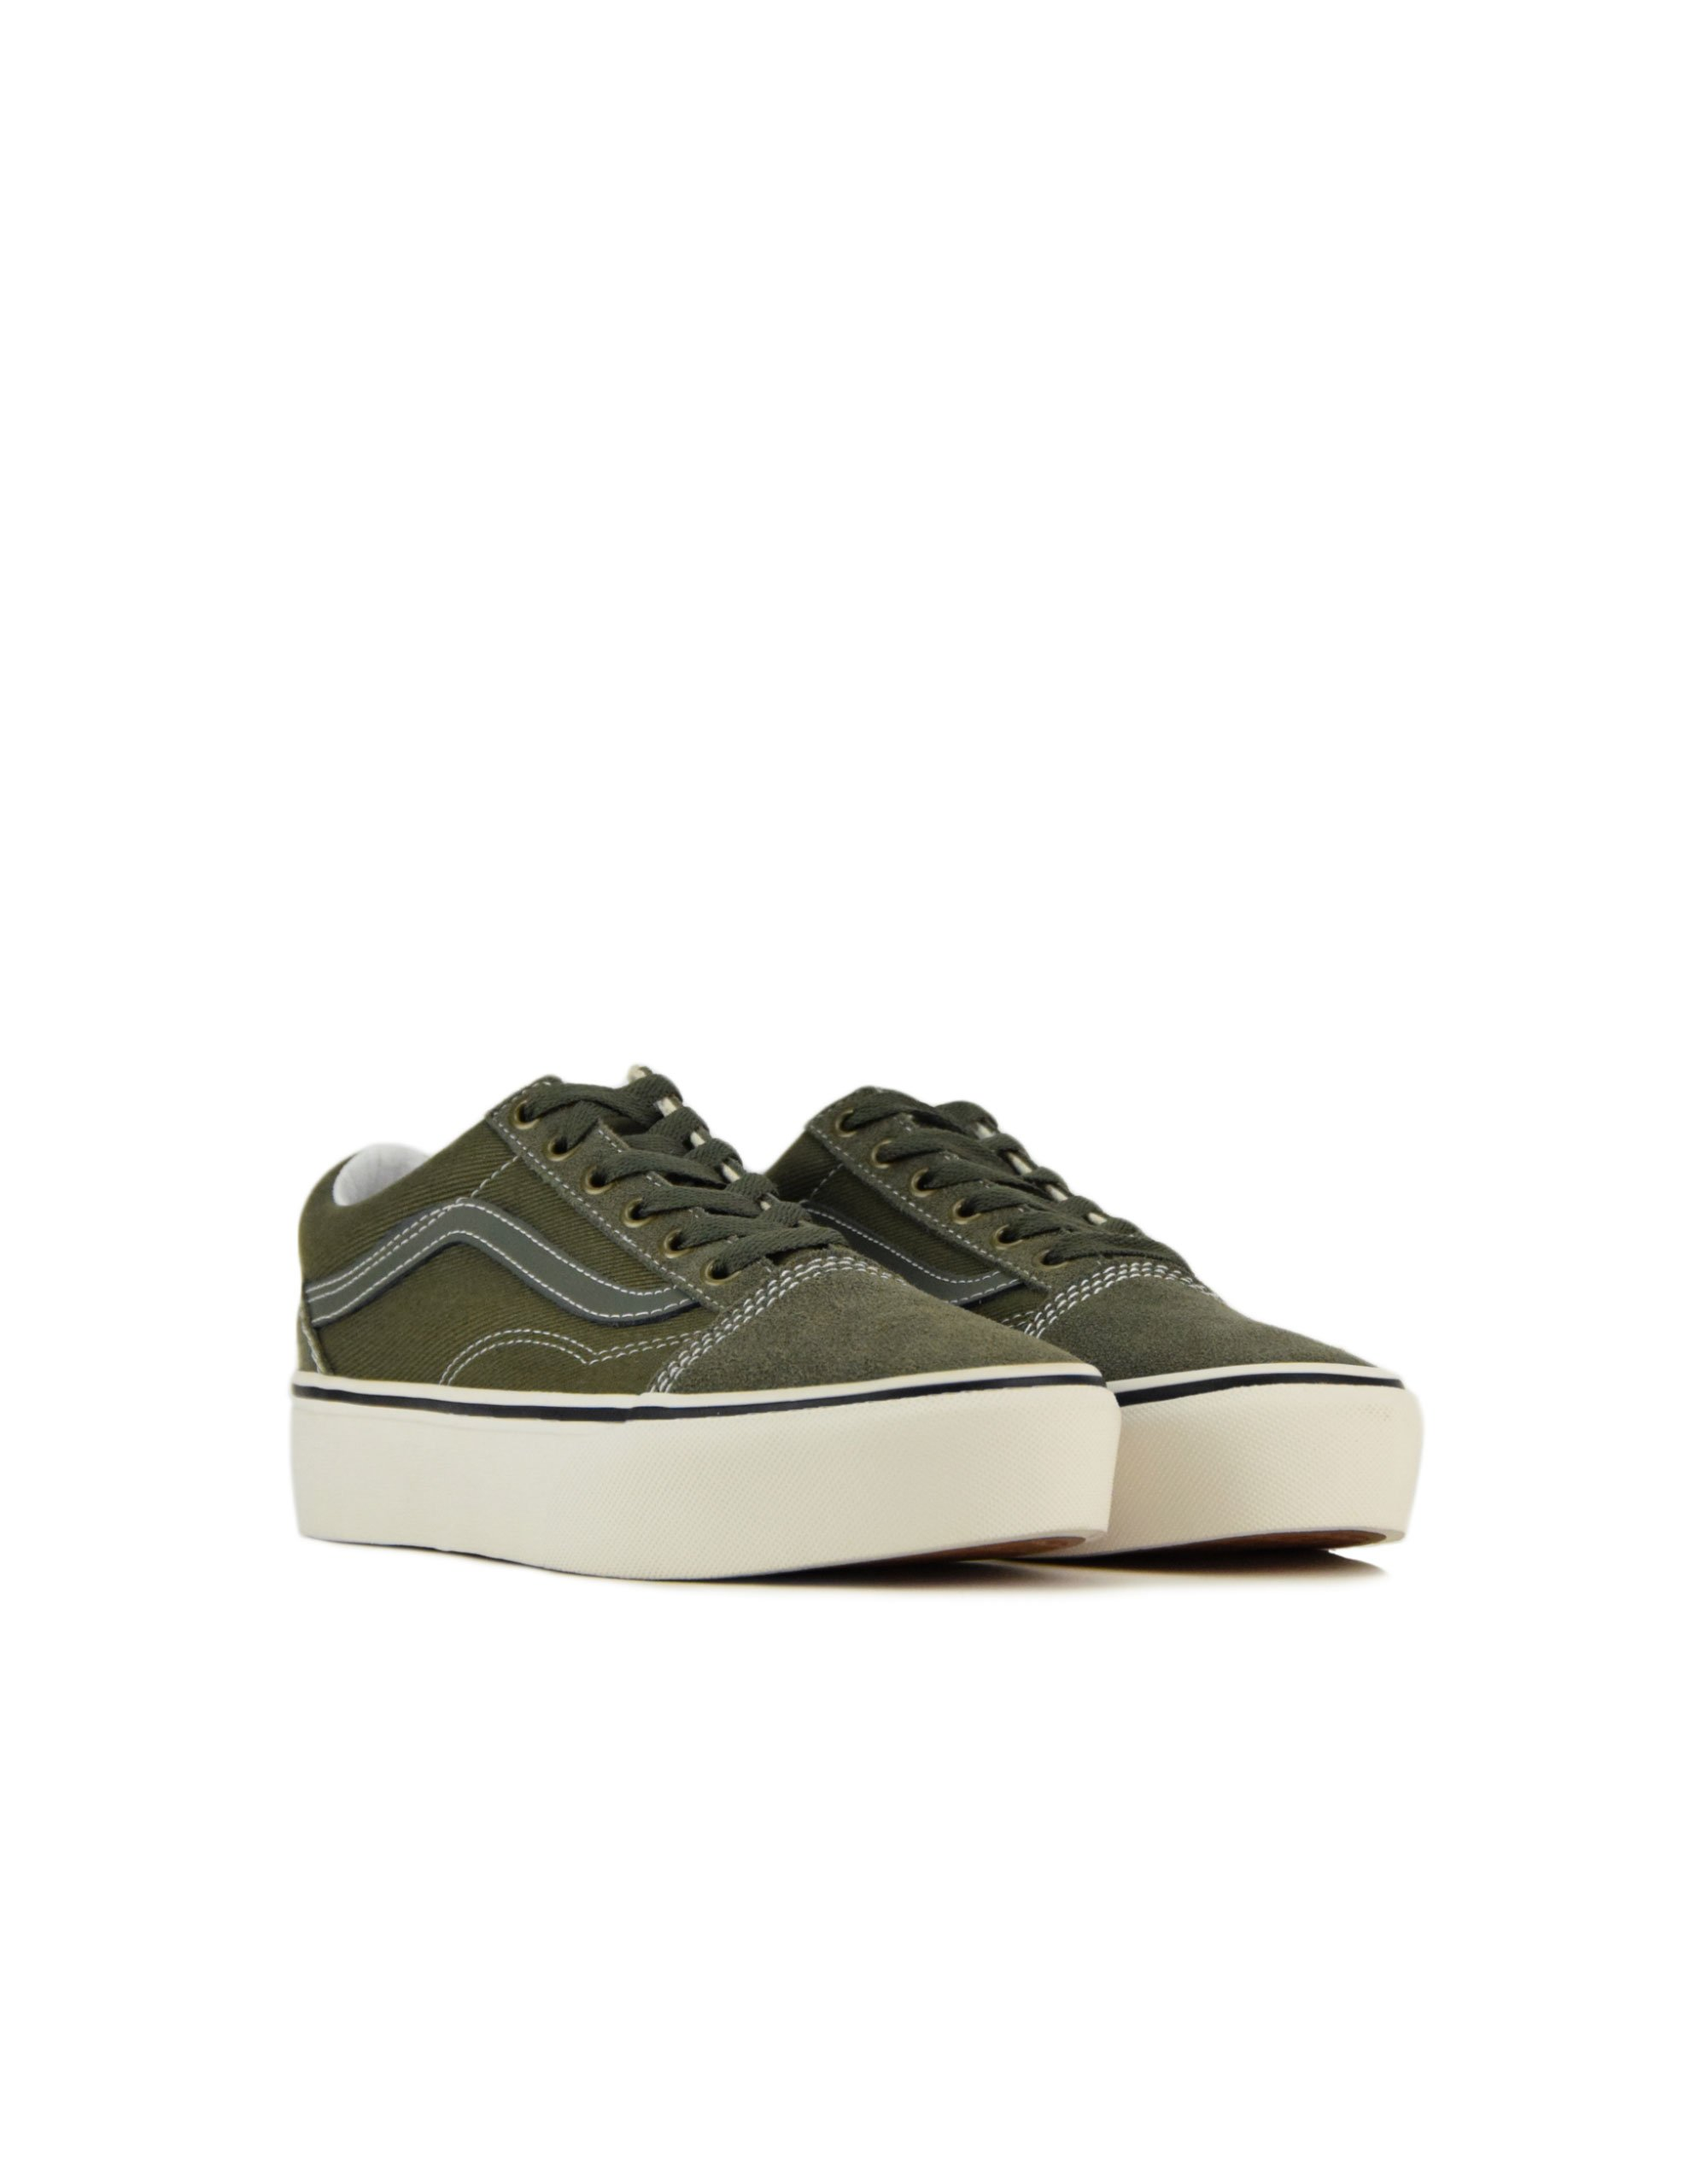 Vans Old Skool Platform (VN0A3B3UVTF1) Grape Leaf/Blanc De Blanc